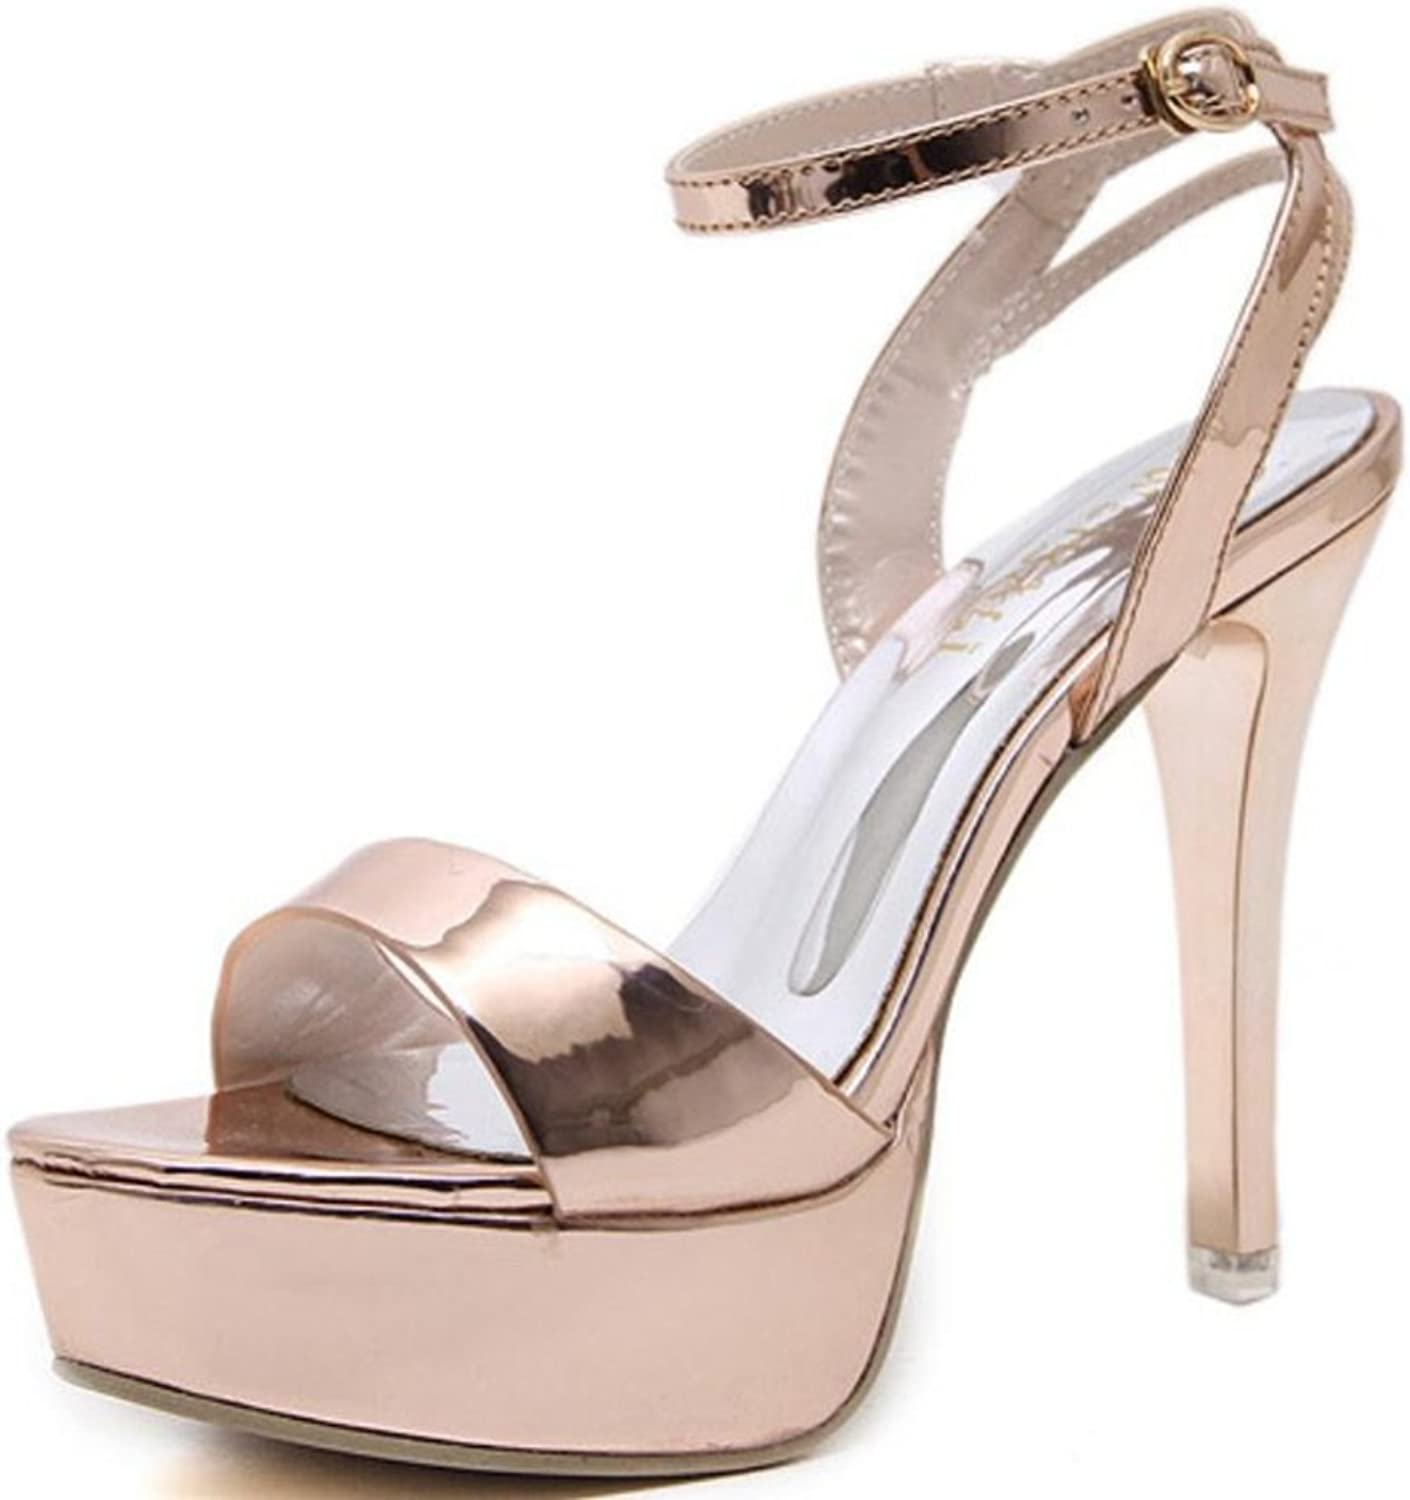 LINYI Women Fashion Waterproof Platform Stiletto Heels Sandals New Open-Toe Slim Wild Summer High Heels